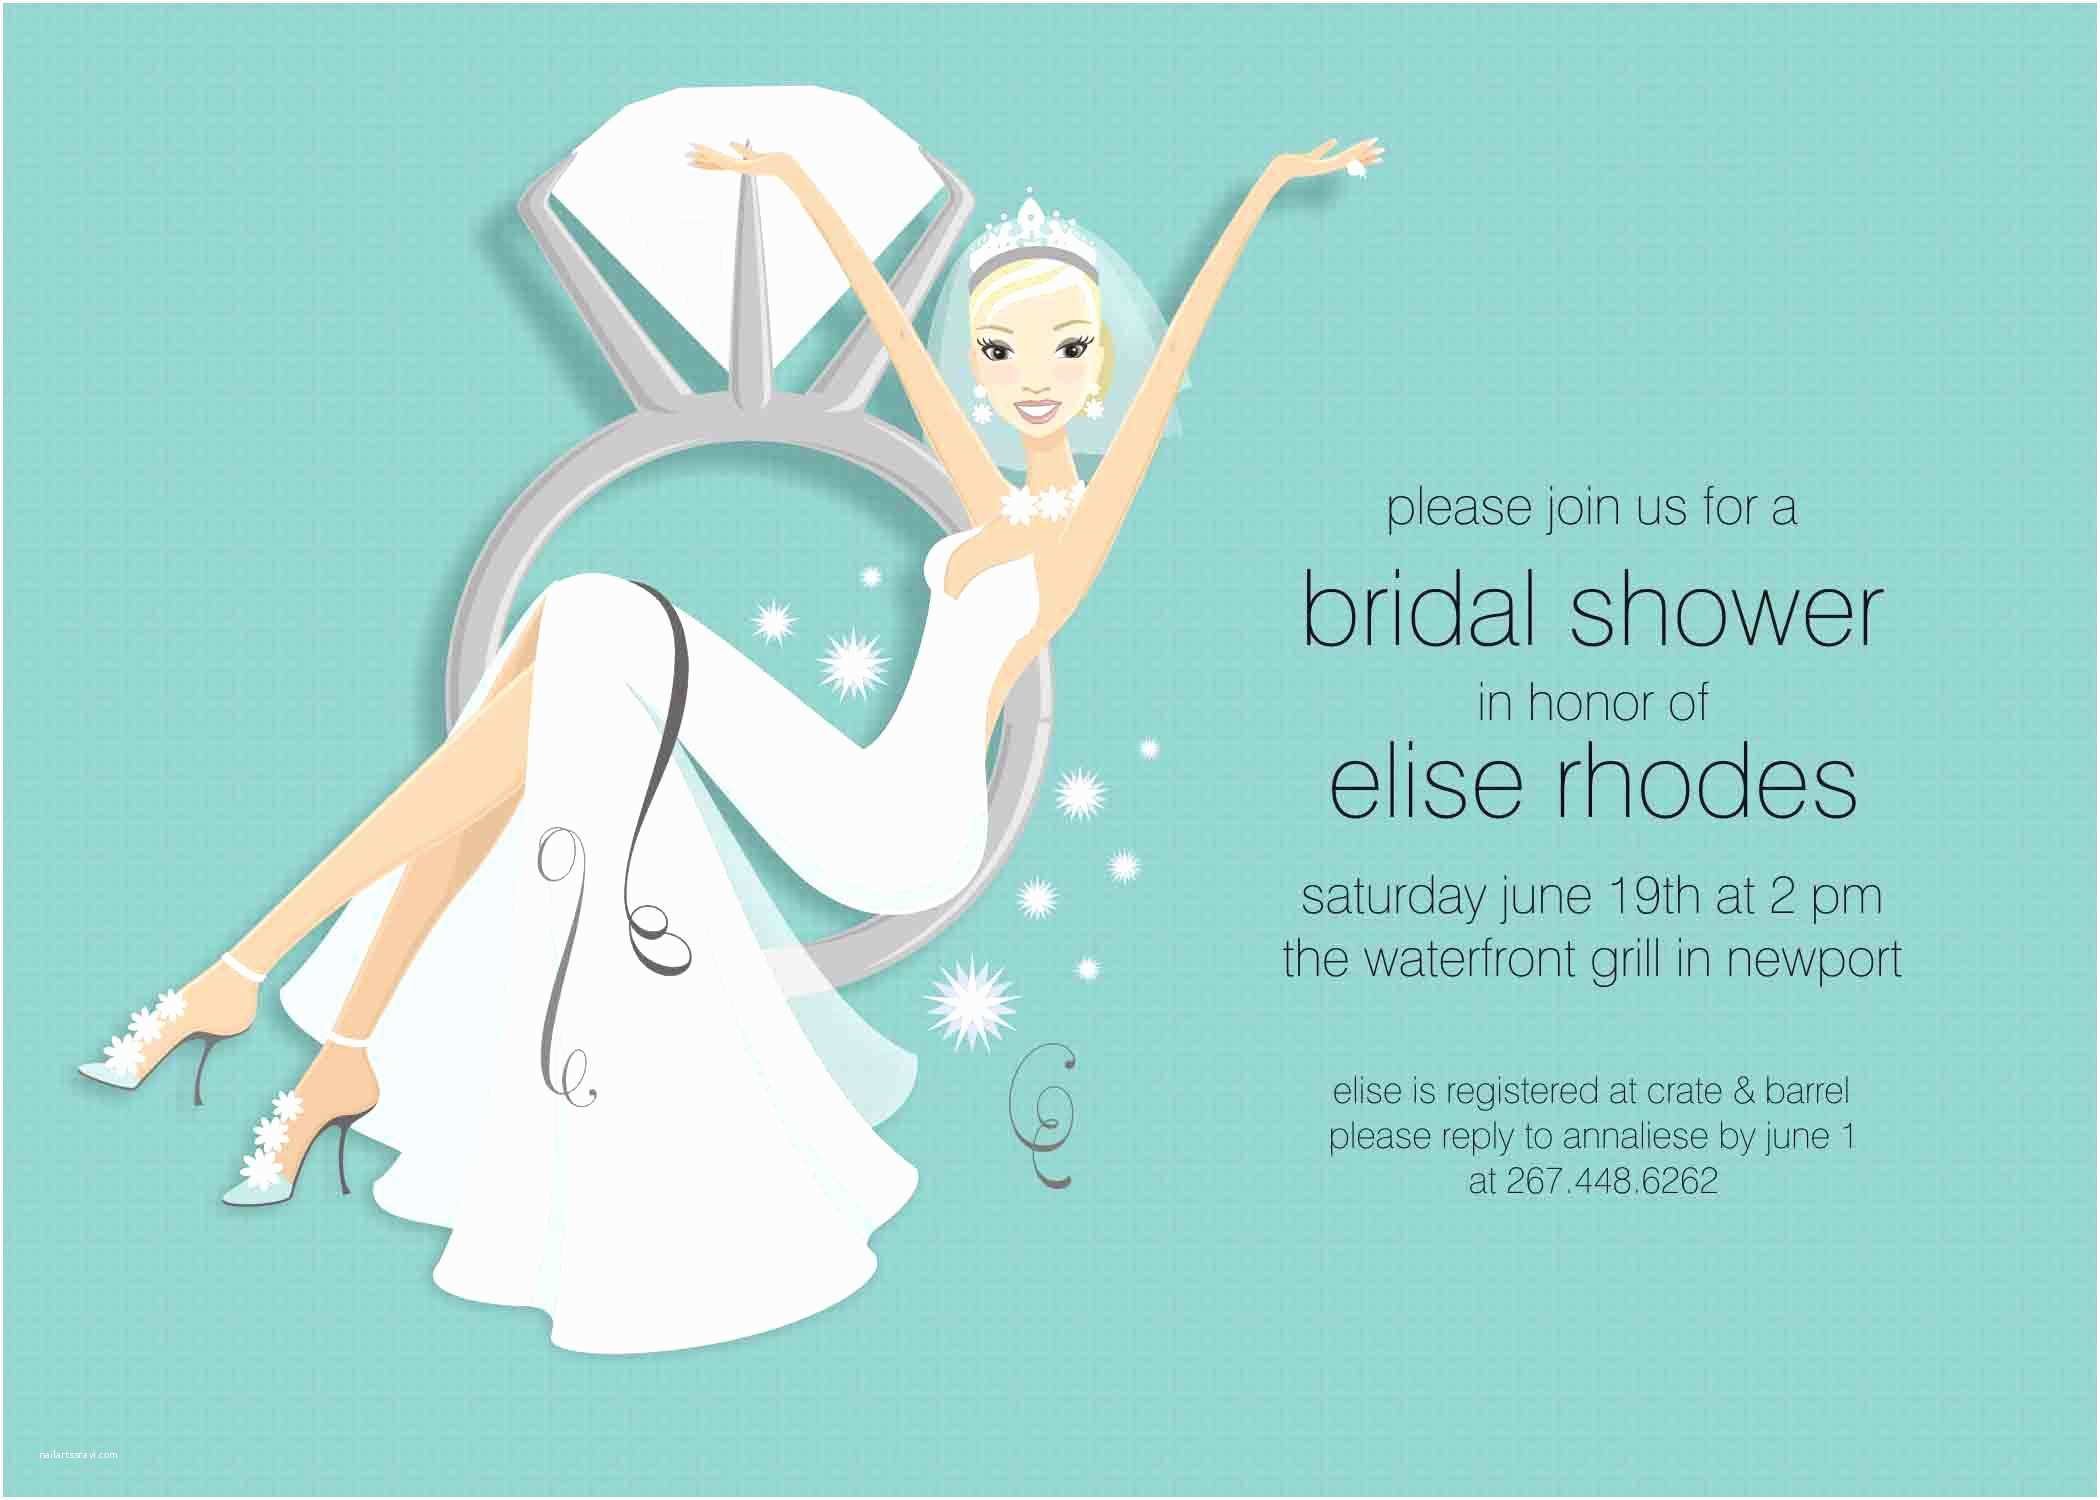 Free Bridal Shower Invitation Templates Template Free Bridal Shower Invitation Template Bridal